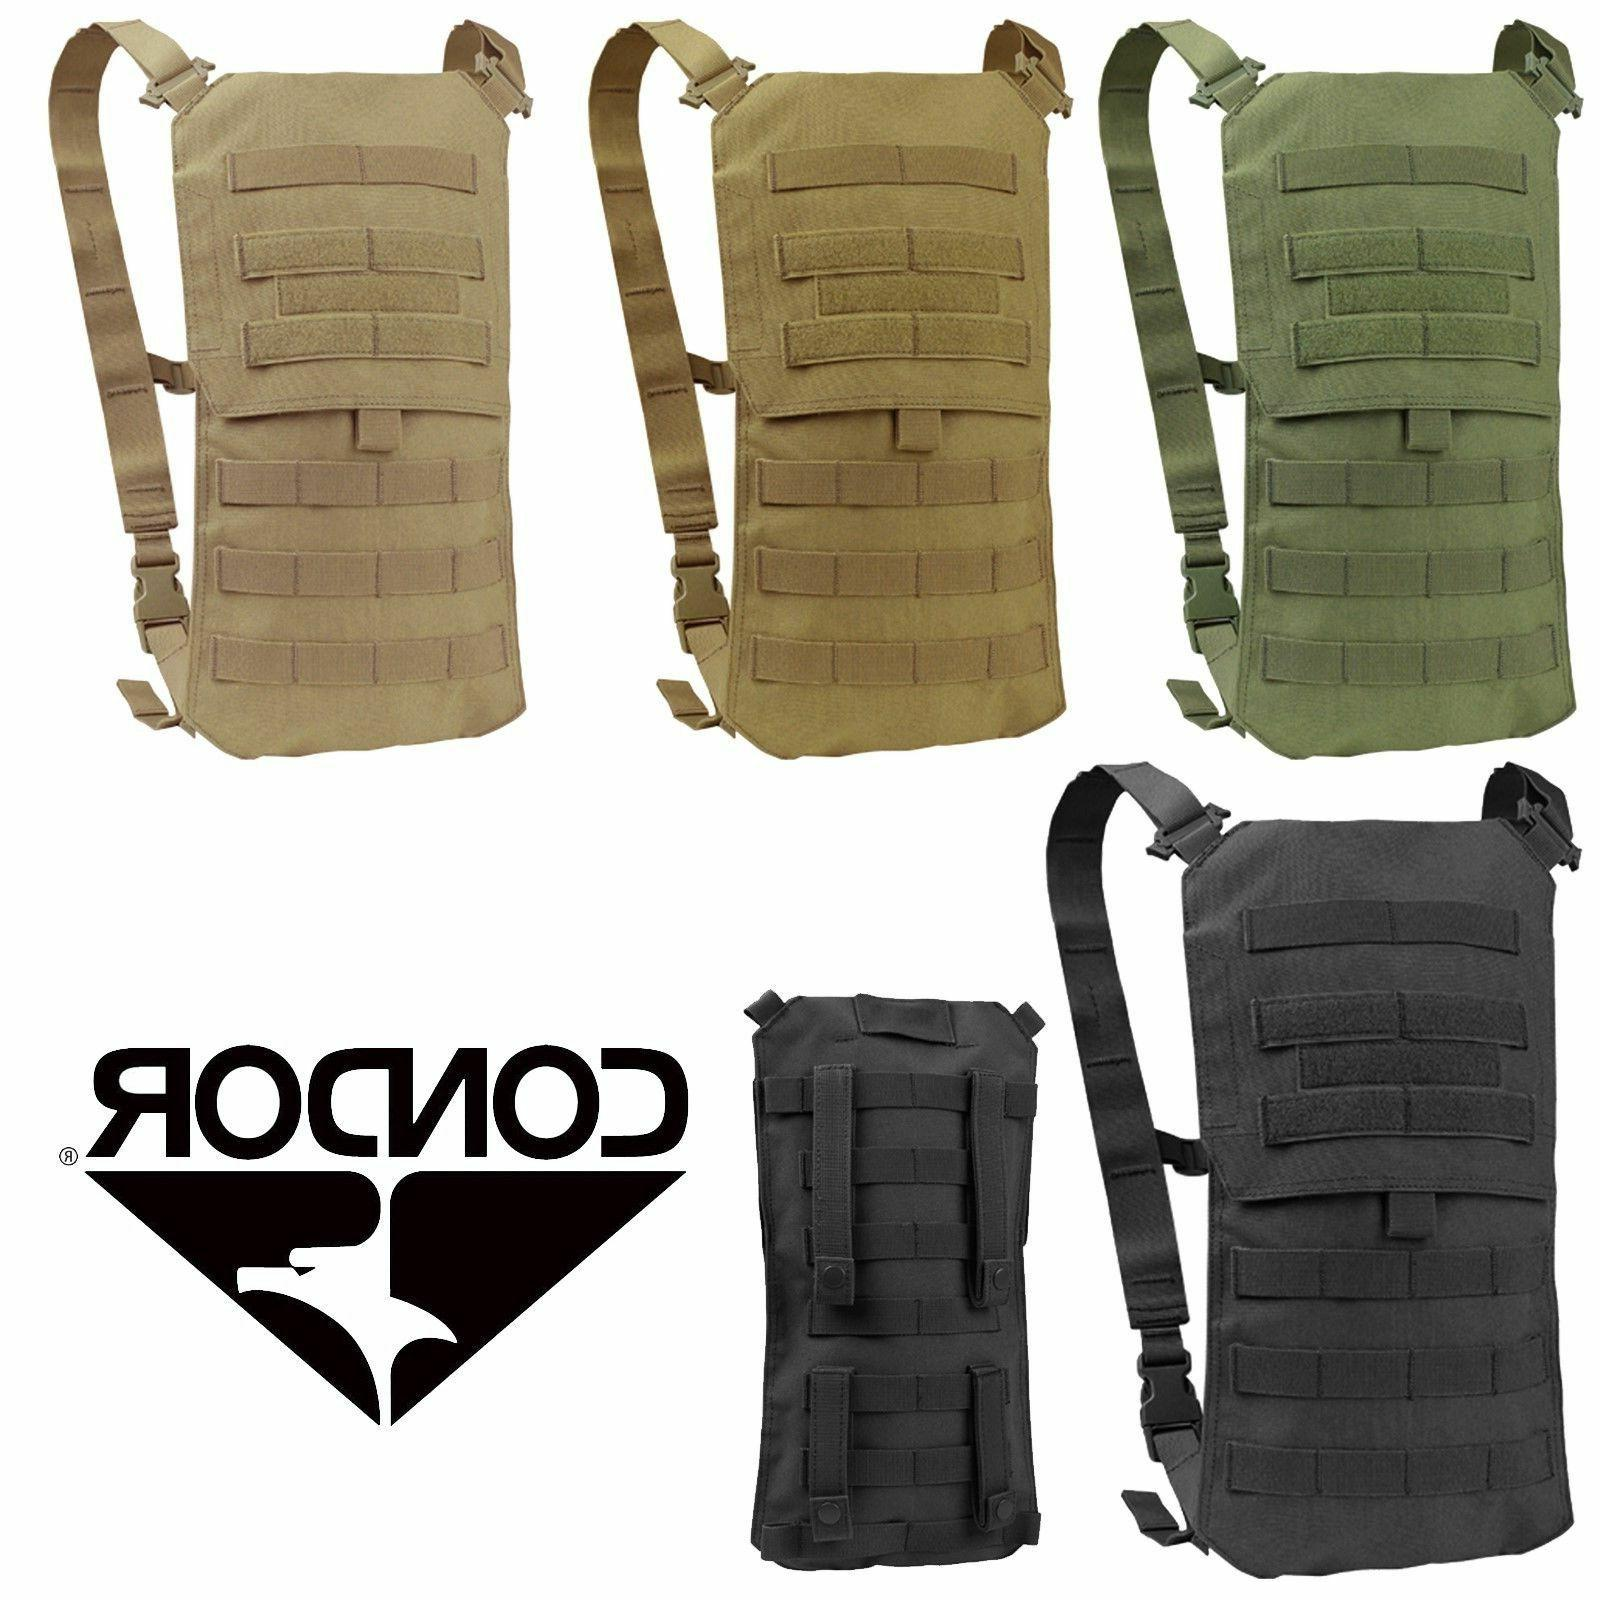 hcb3 tactical molle insulated oasis hydration carrier